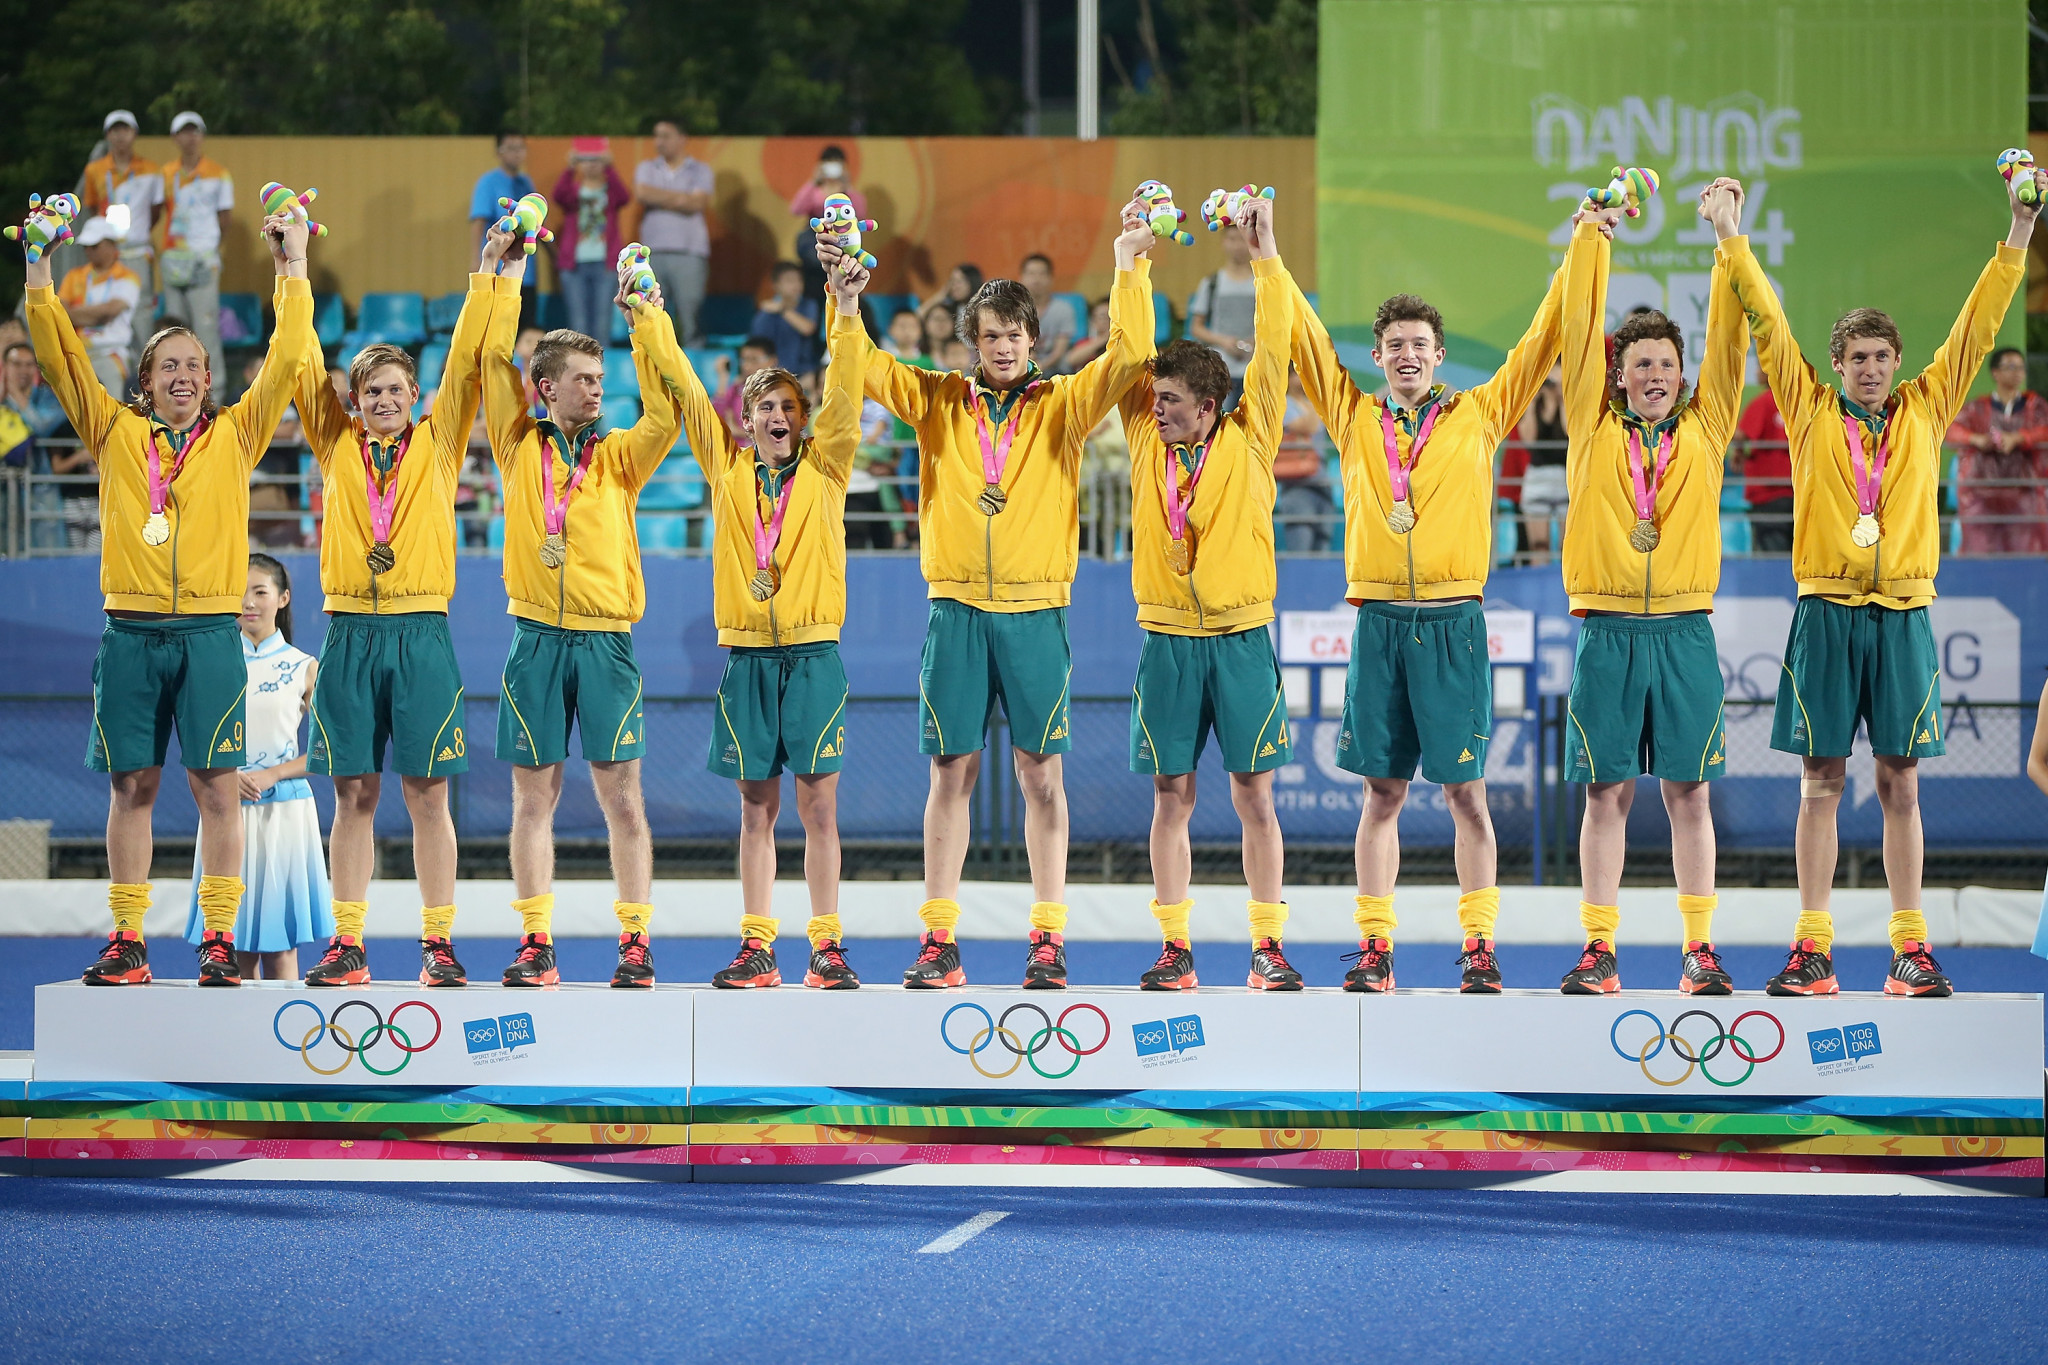 Australia clinched gold when hockey5s made its Youth Olympics debut in 2014 ©Getty Images